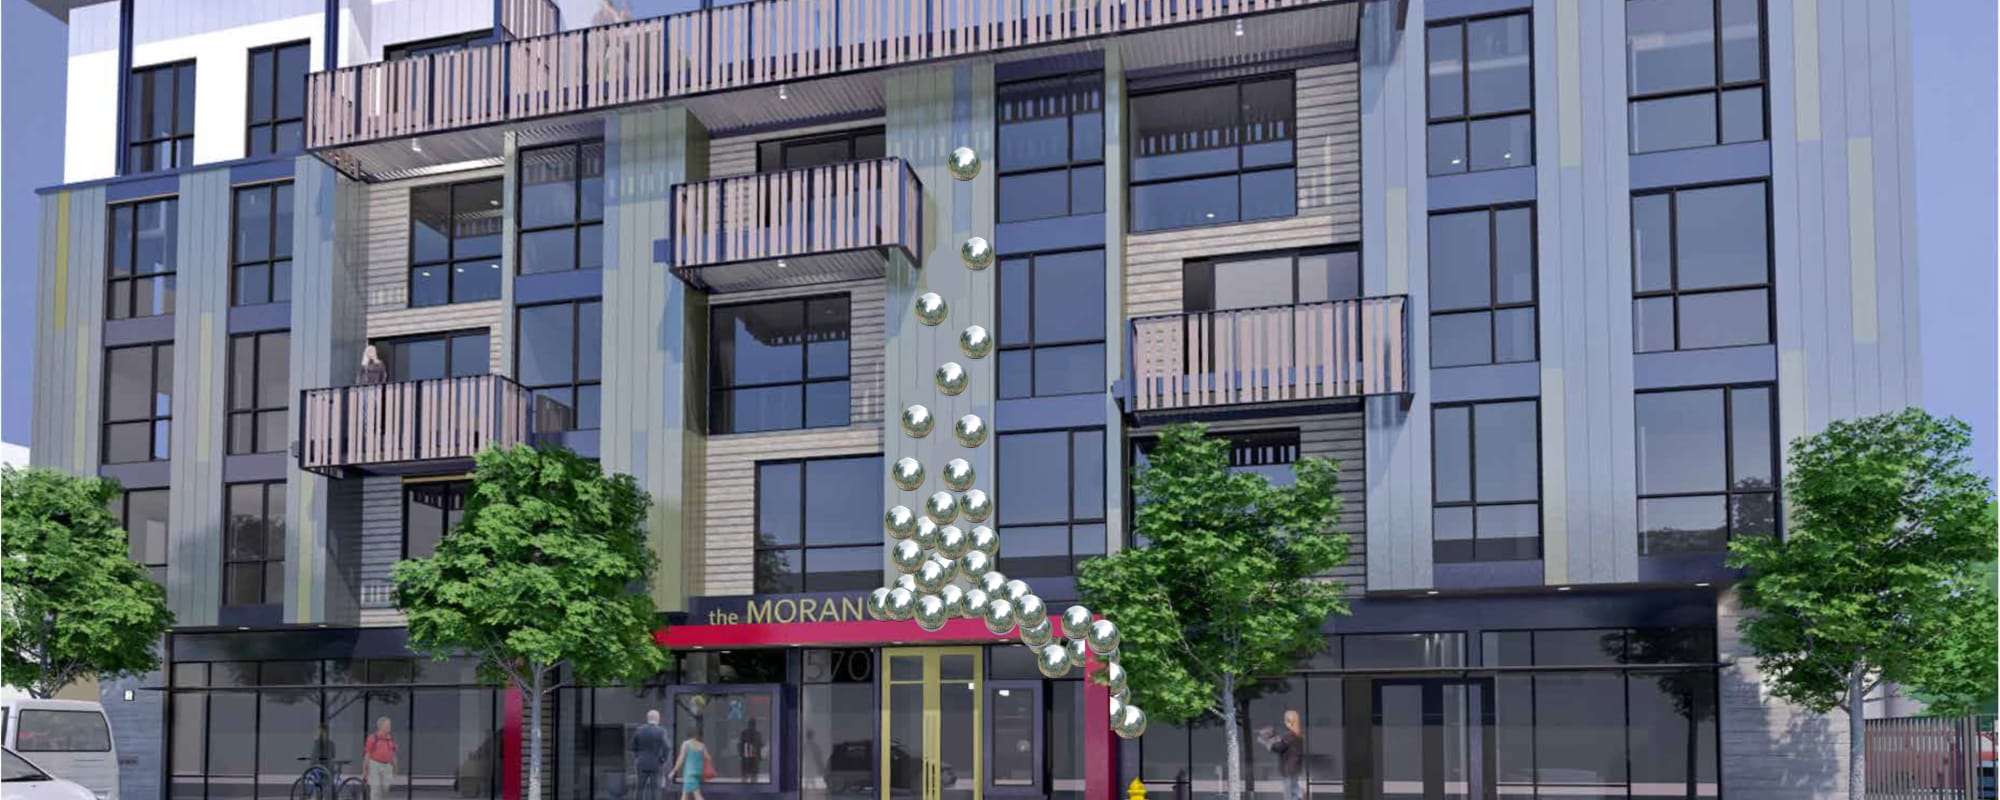 Exterior rendering of The Moran in Oakland, California